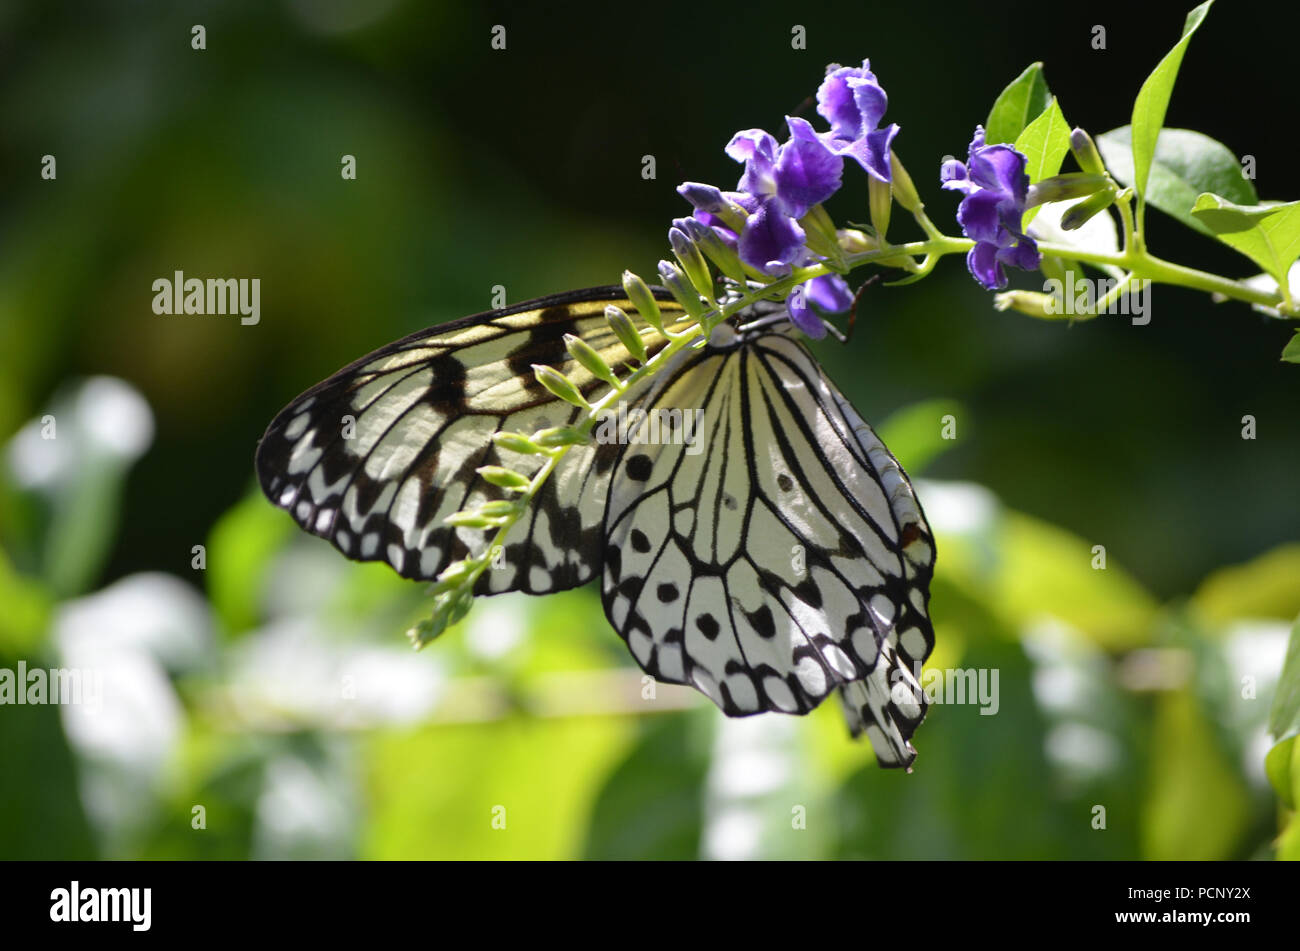 7c19227560921 Gorgeous large tree nymph butterfly on dainty purple flowers Stock ...